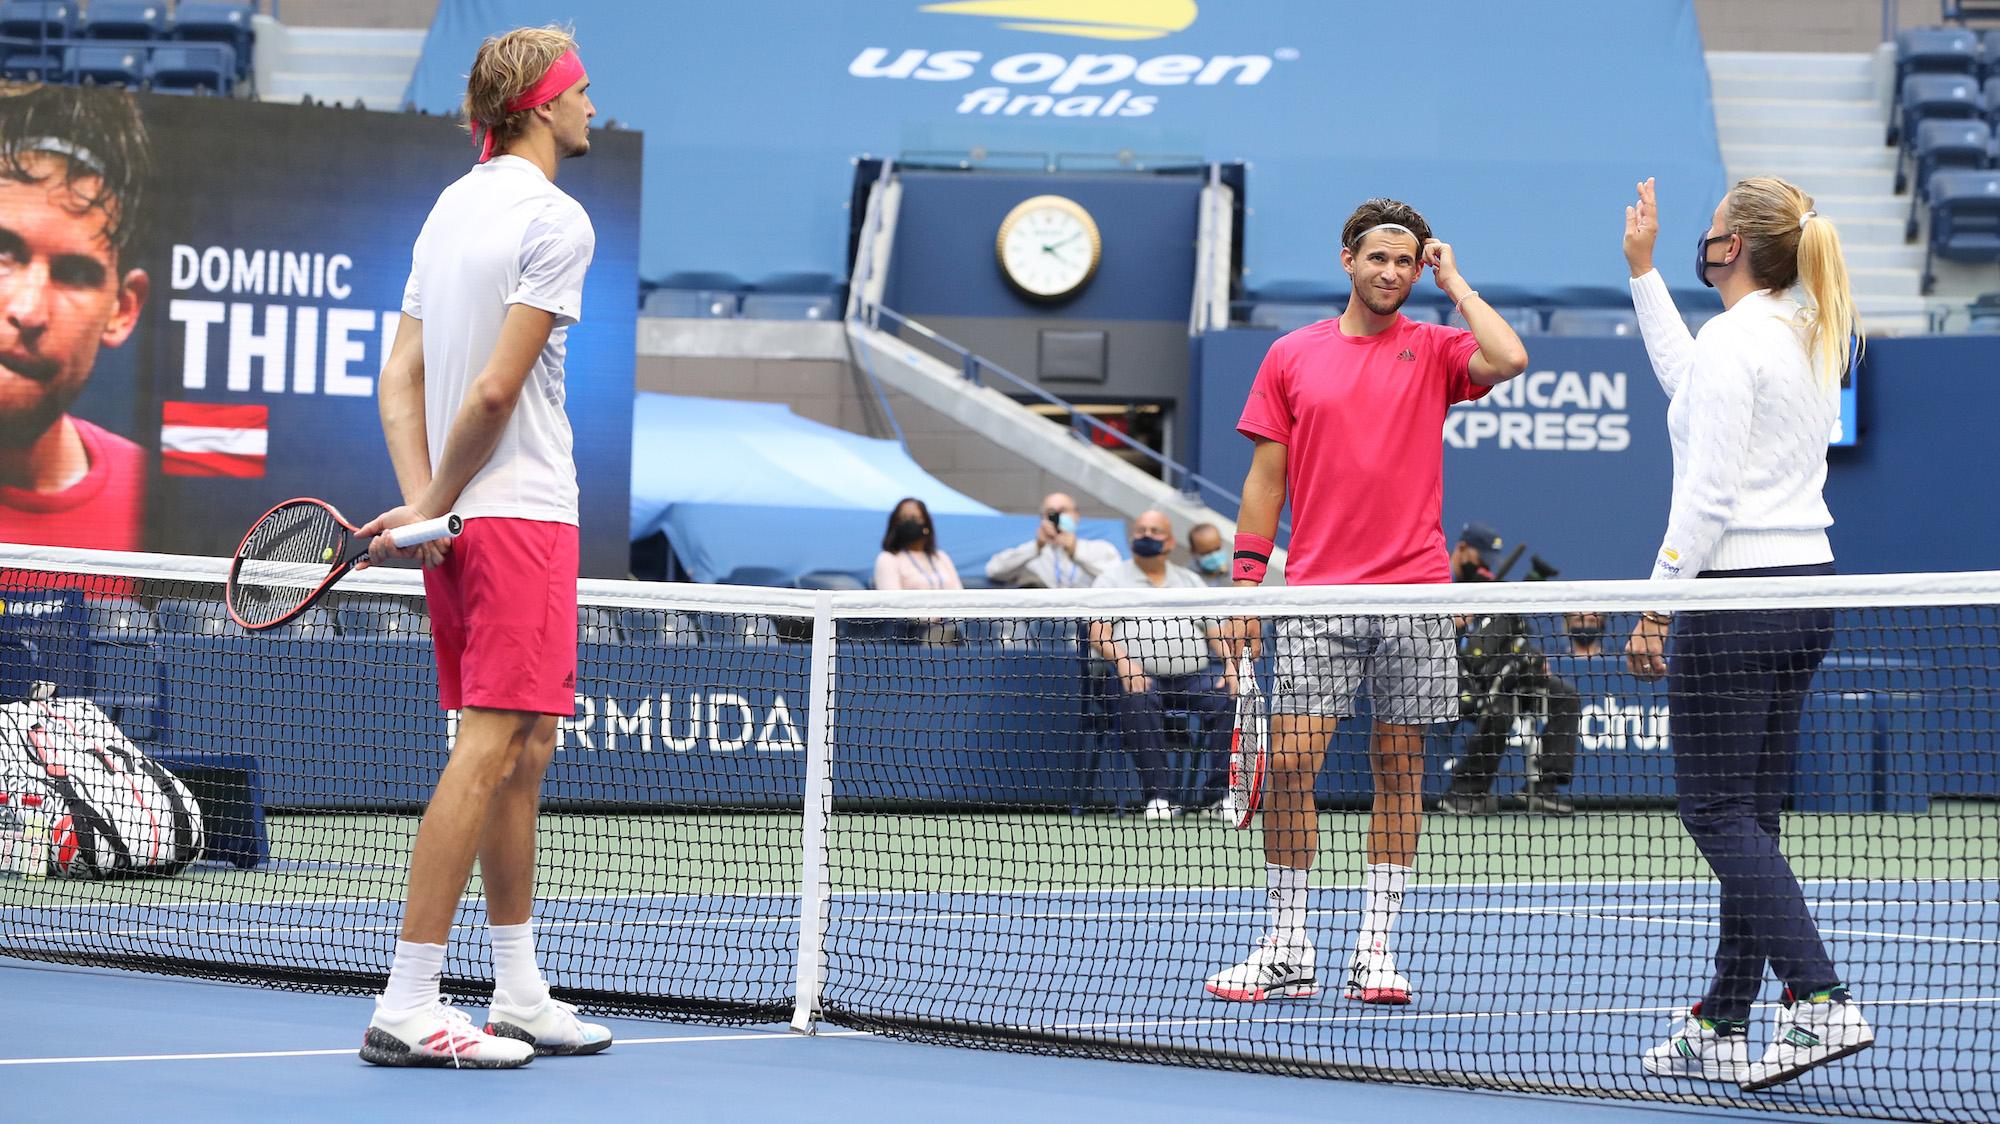 Dominic Thiem vs Alexander Zverev live stream: how to watch US Open final tennis from anywhere thumbnail